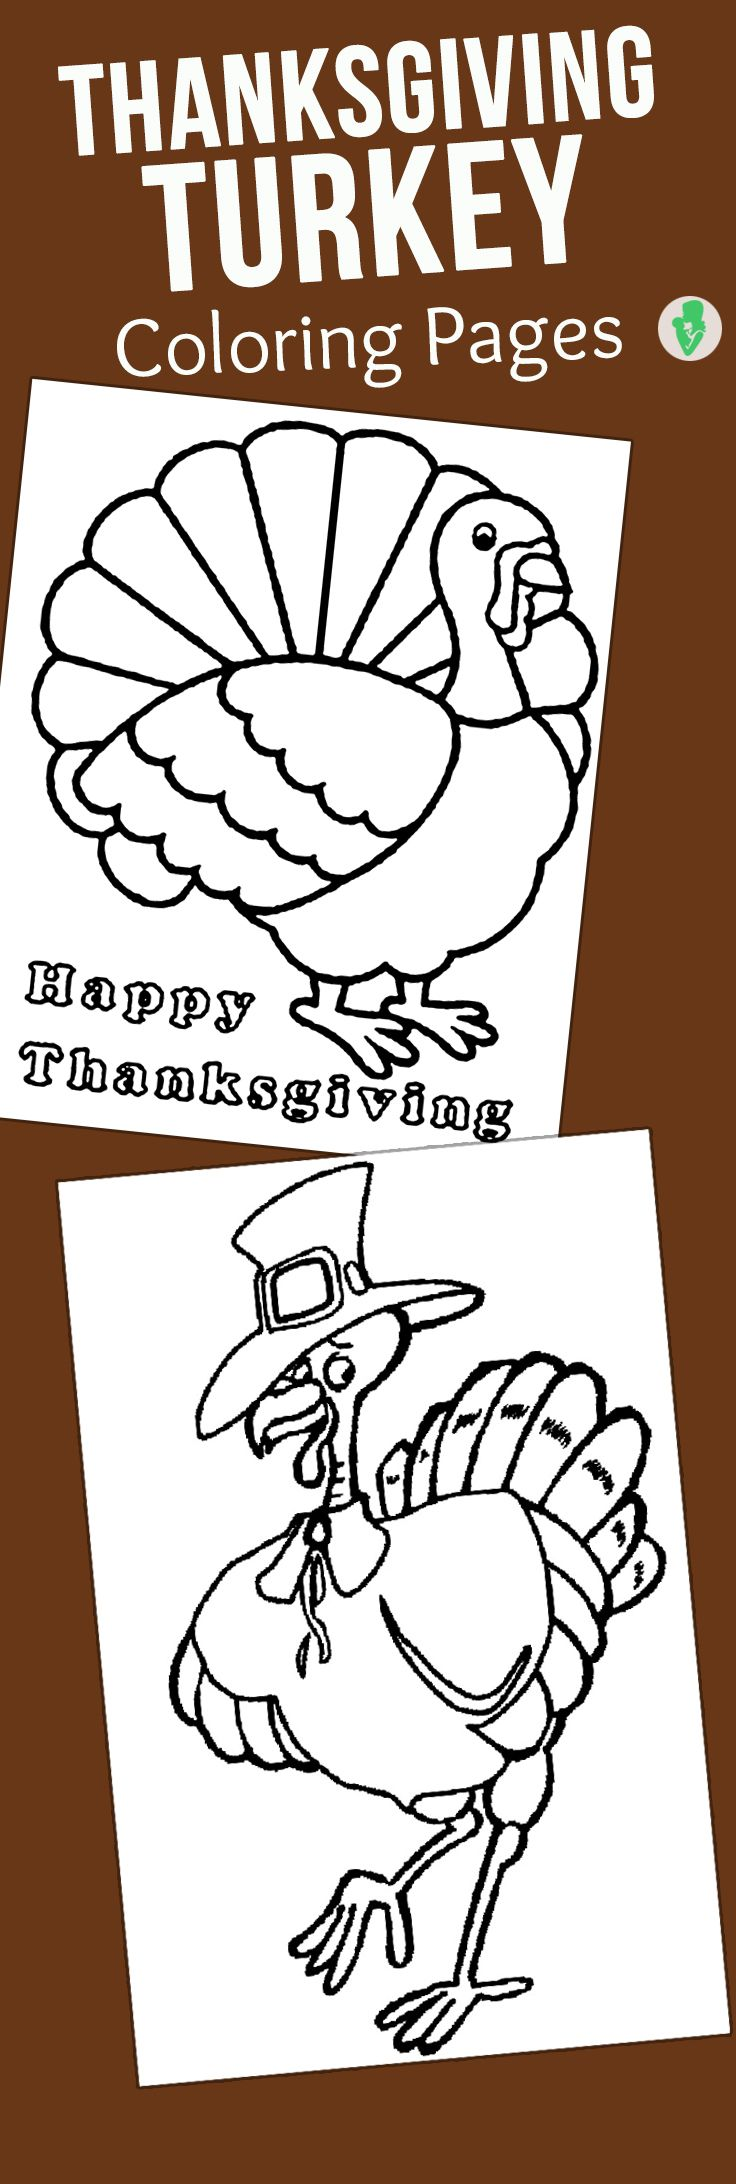 thanksgiving coloring pages and themes - photo#42